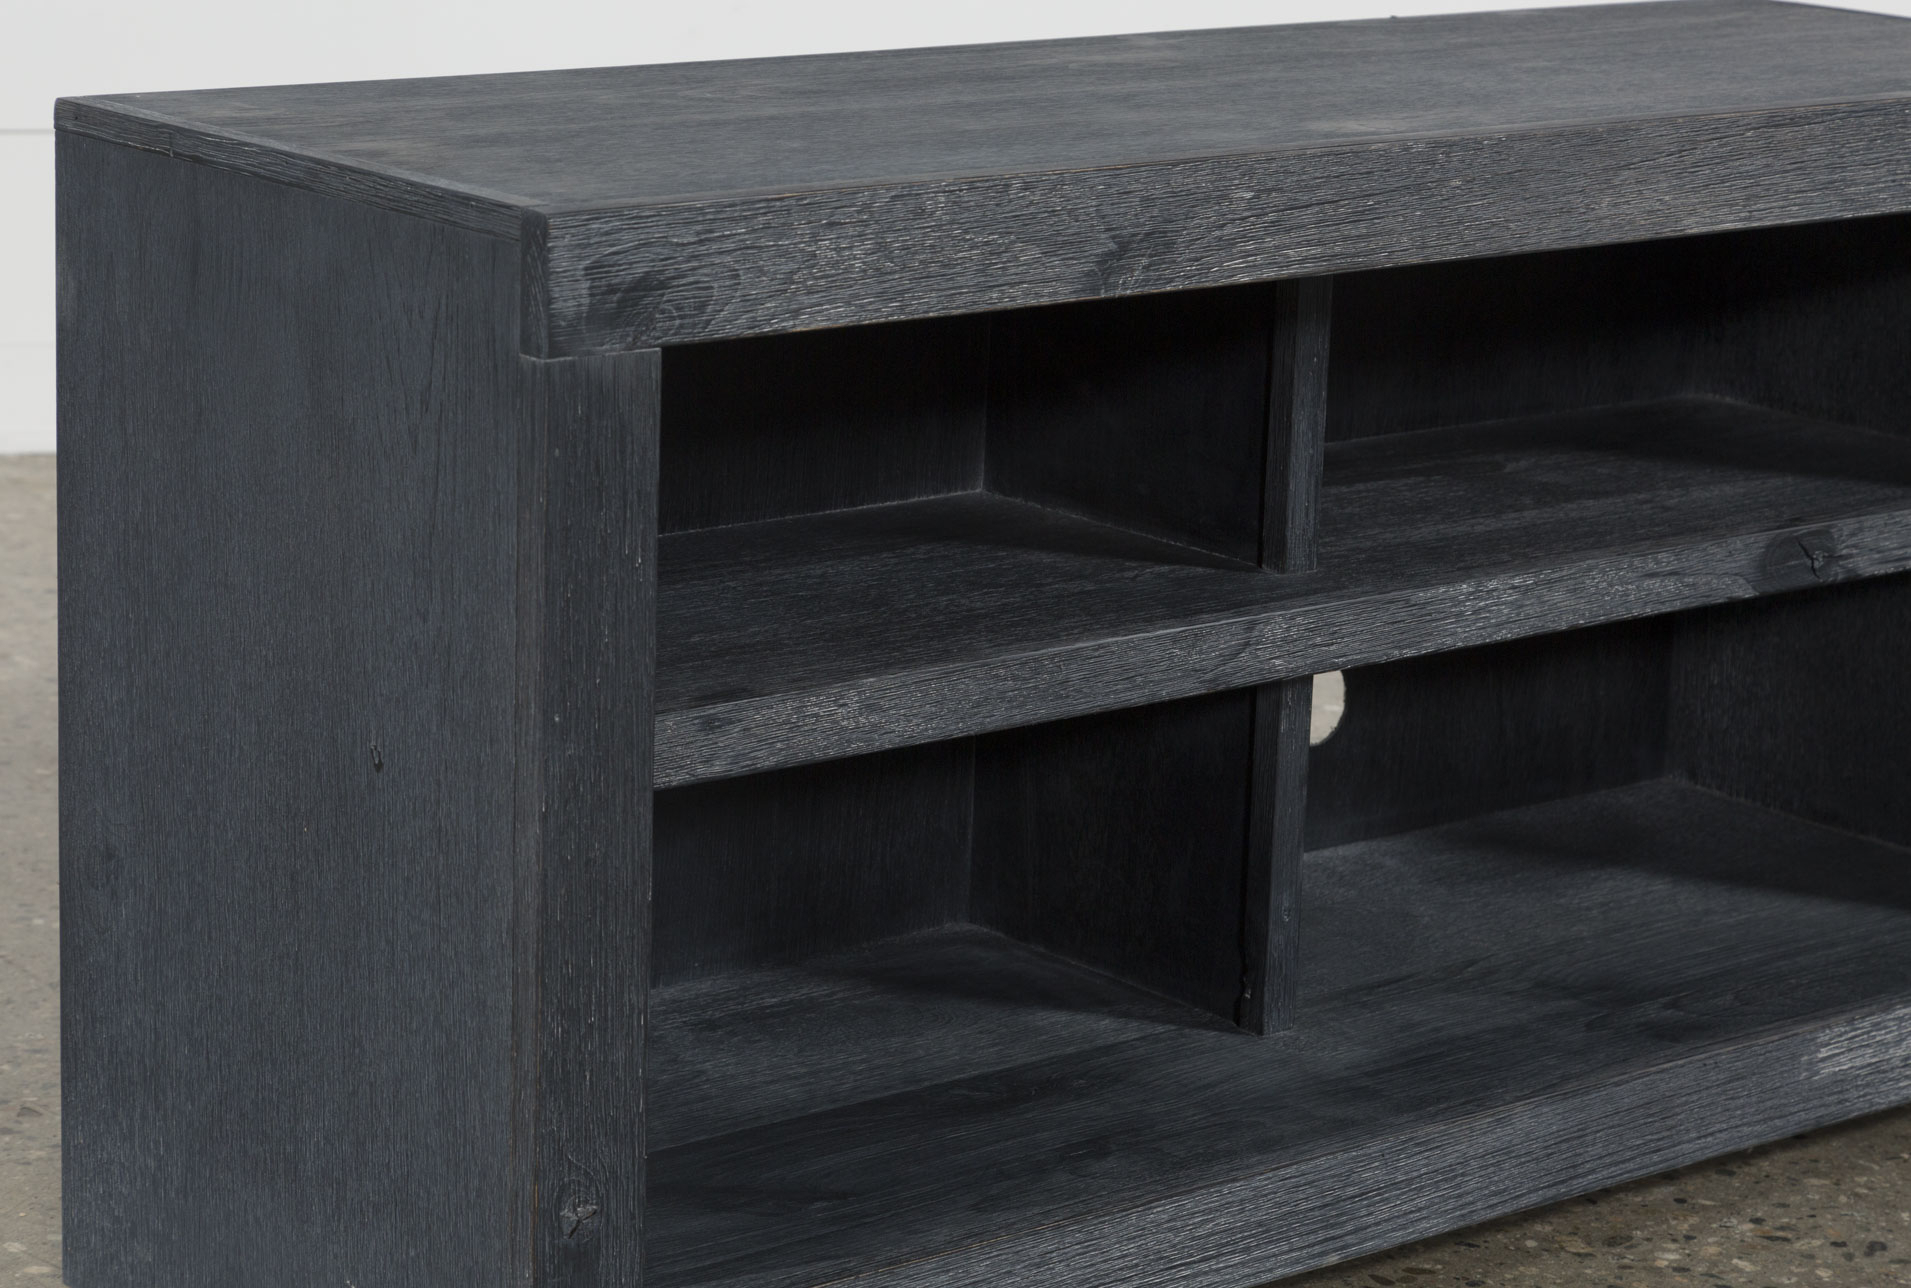 Kilian Black 49 Inch Tv Stand | Products | Pinterest | Black Regarding Kilian Black 49 Inch Tv Stands (Photo 1 of 30)